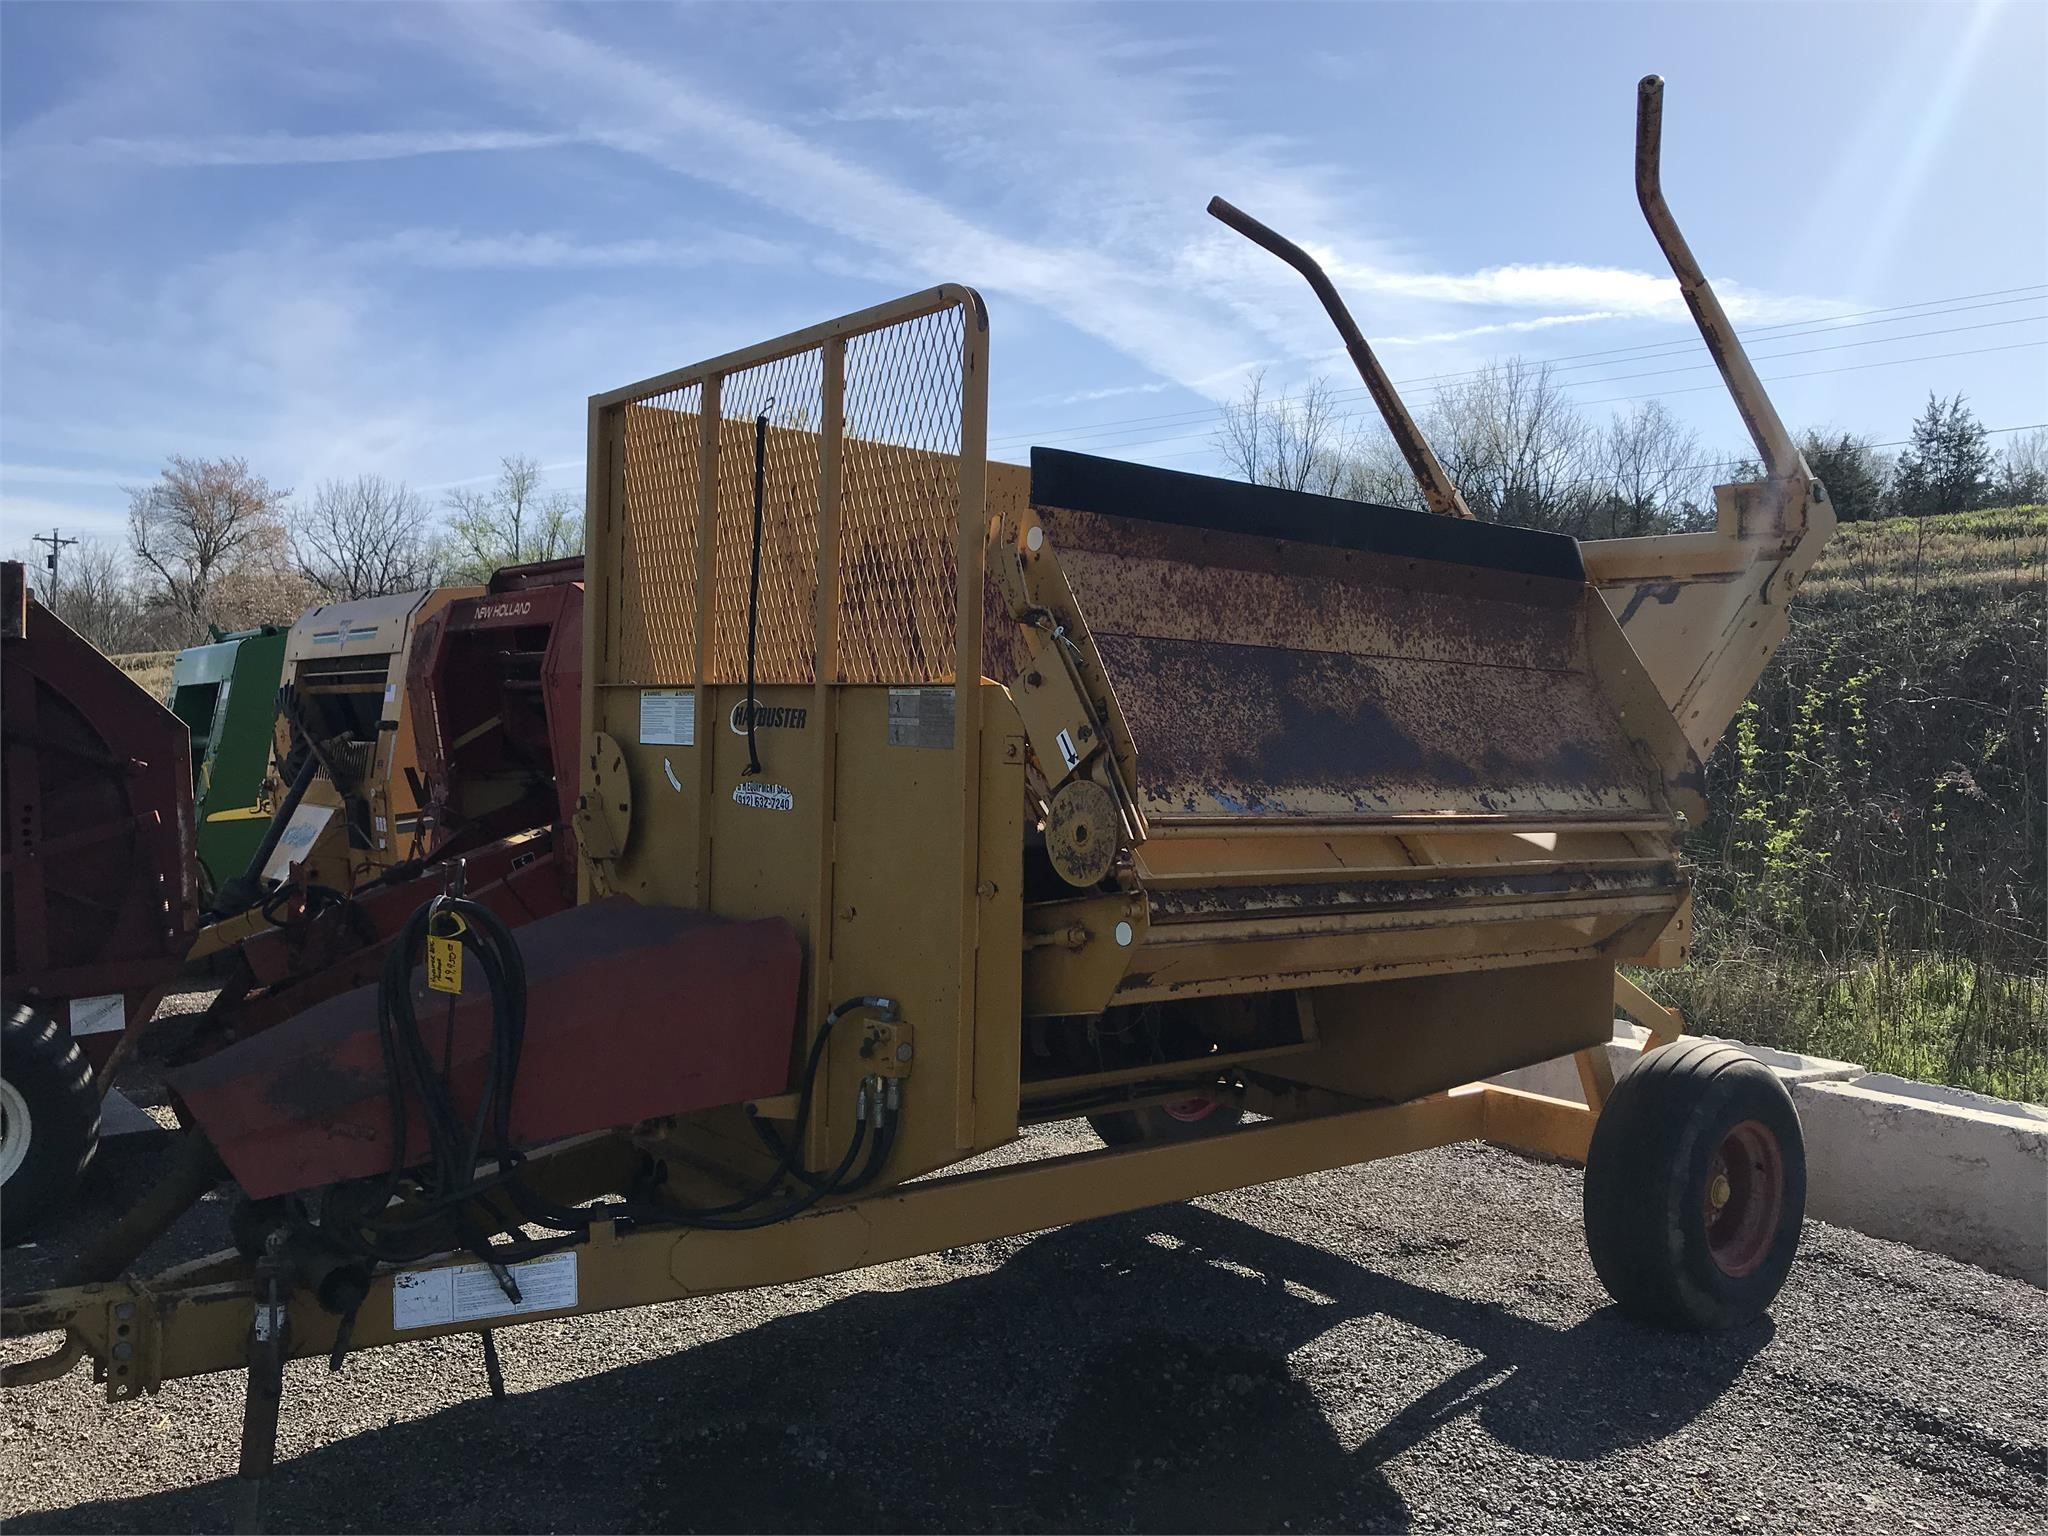 Haybuster 2640 Grinders and Mixer